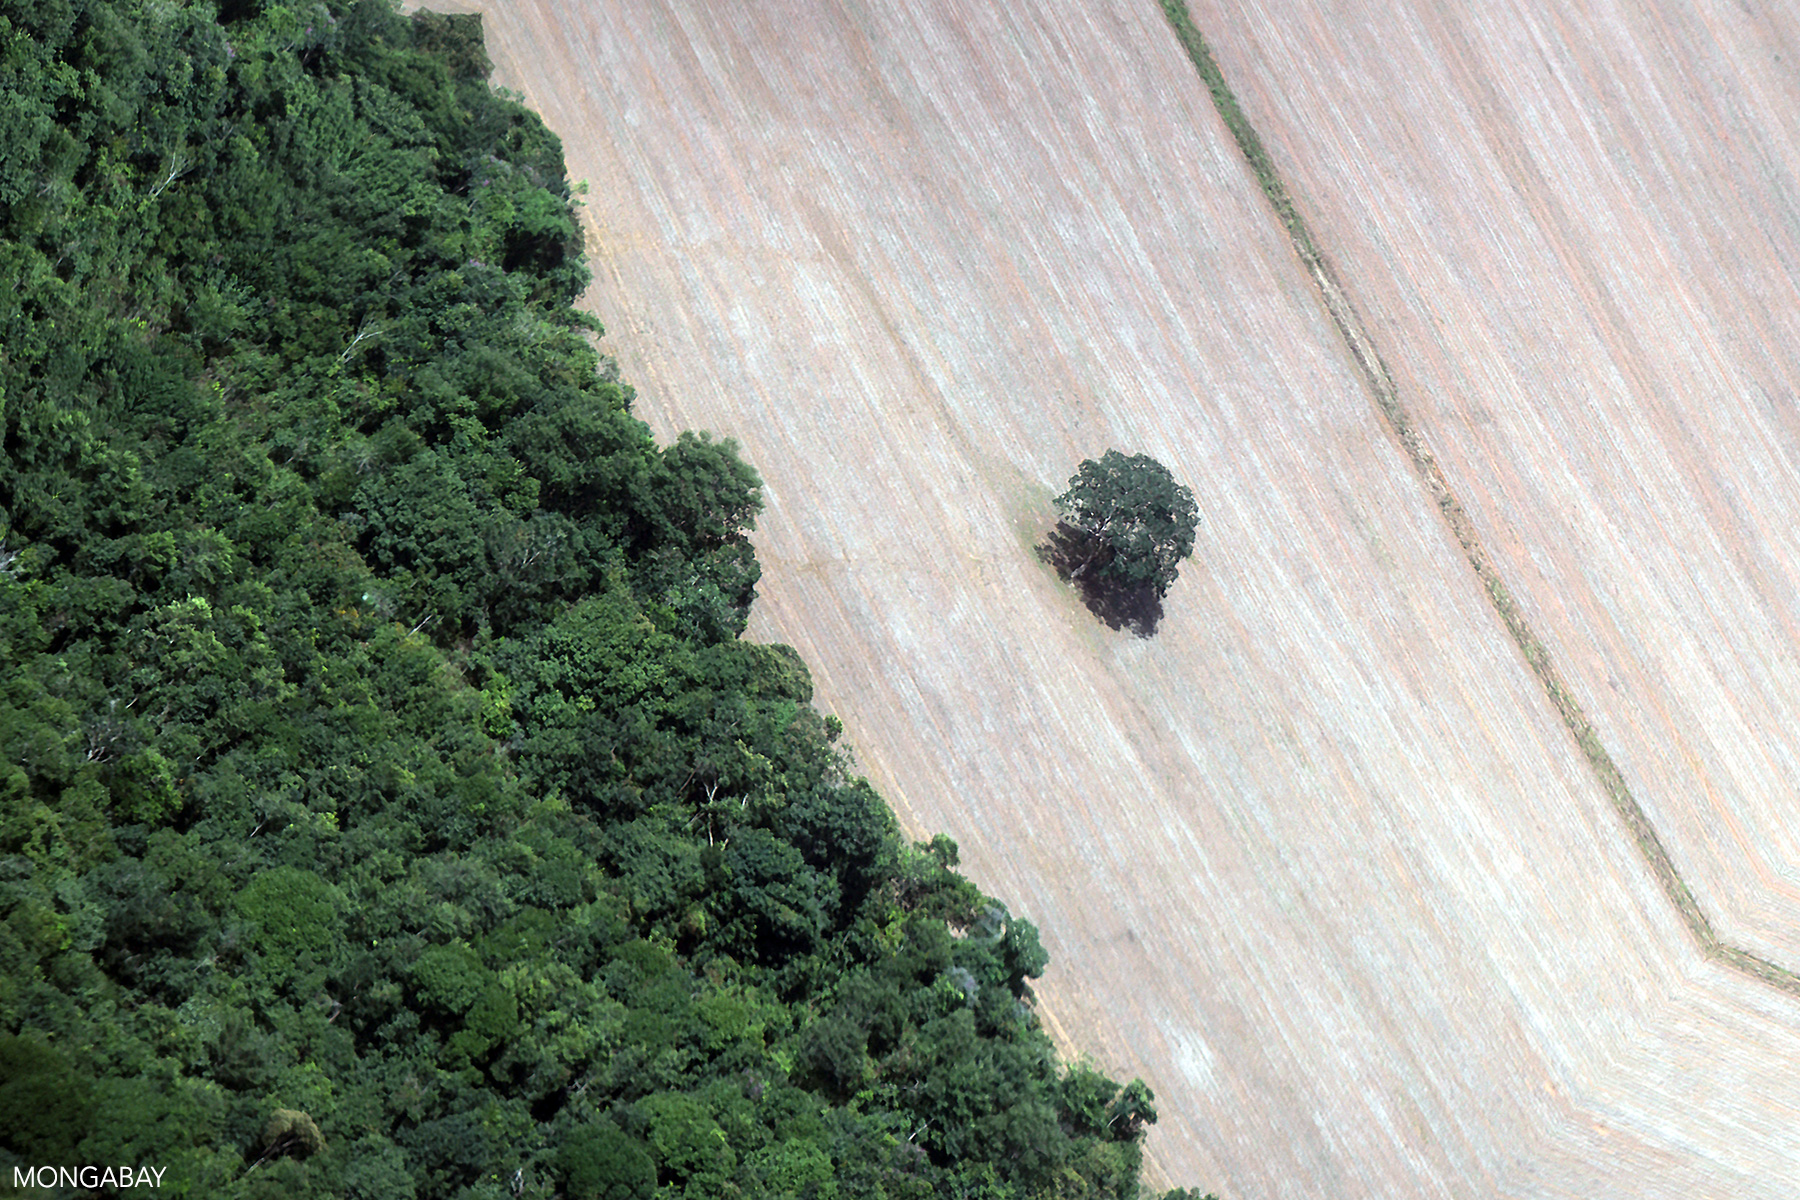 Deforestation for cattle ranching in the Brazilian Amazon. Photo by Rhett A. Butler for Mongabay.